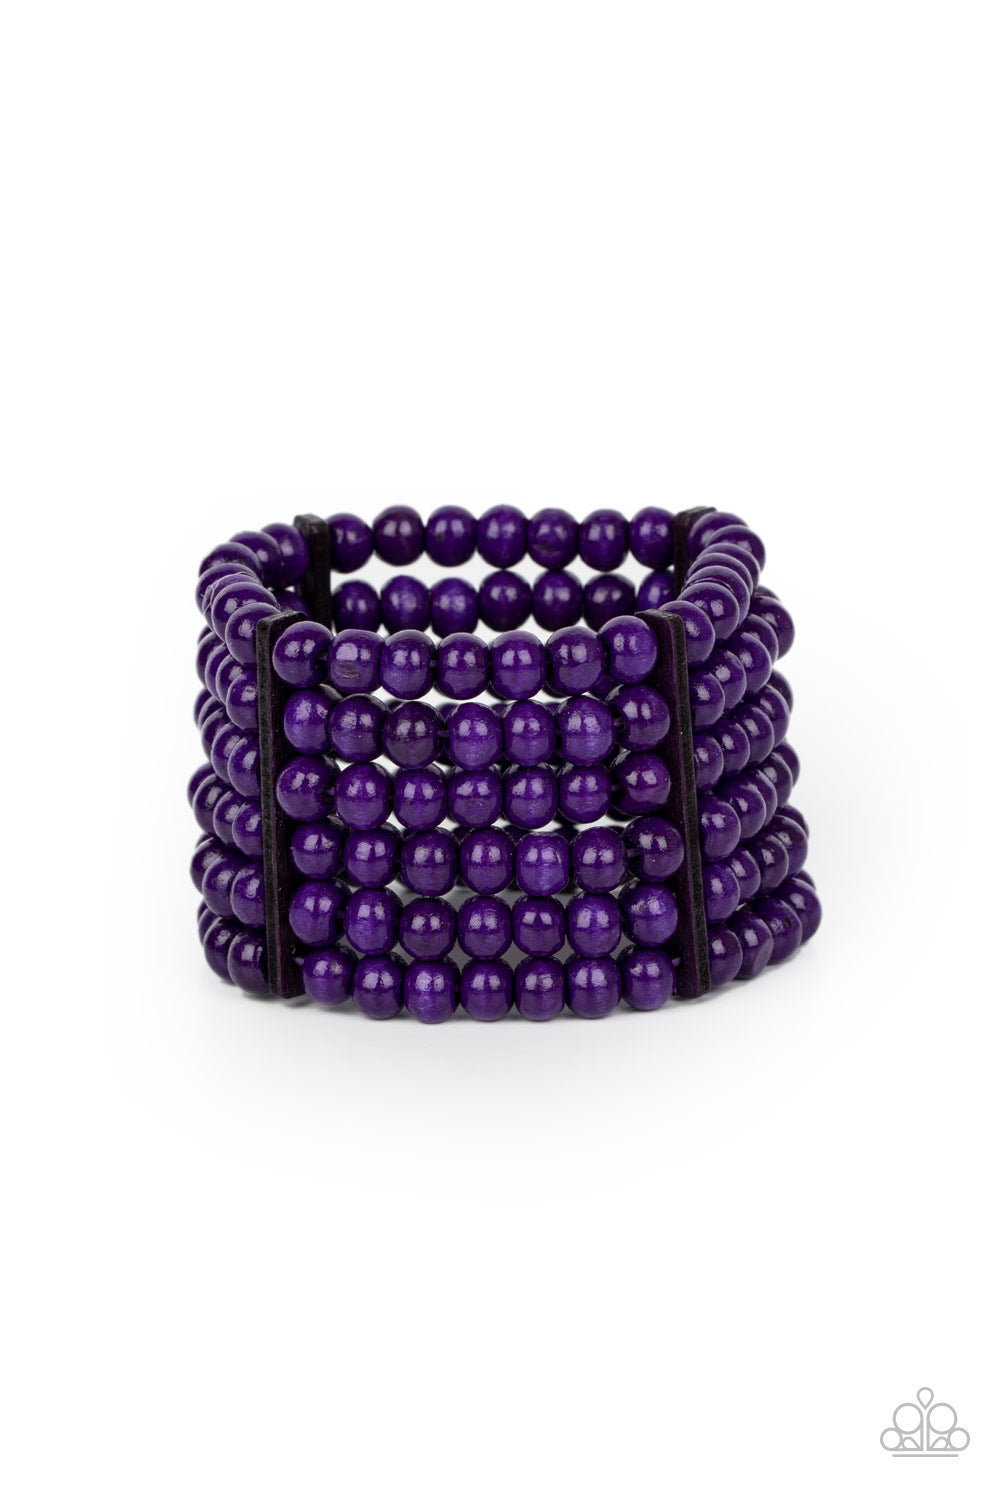 Paparazzi Bracelet ~ Tanning in Tanzania - Purple